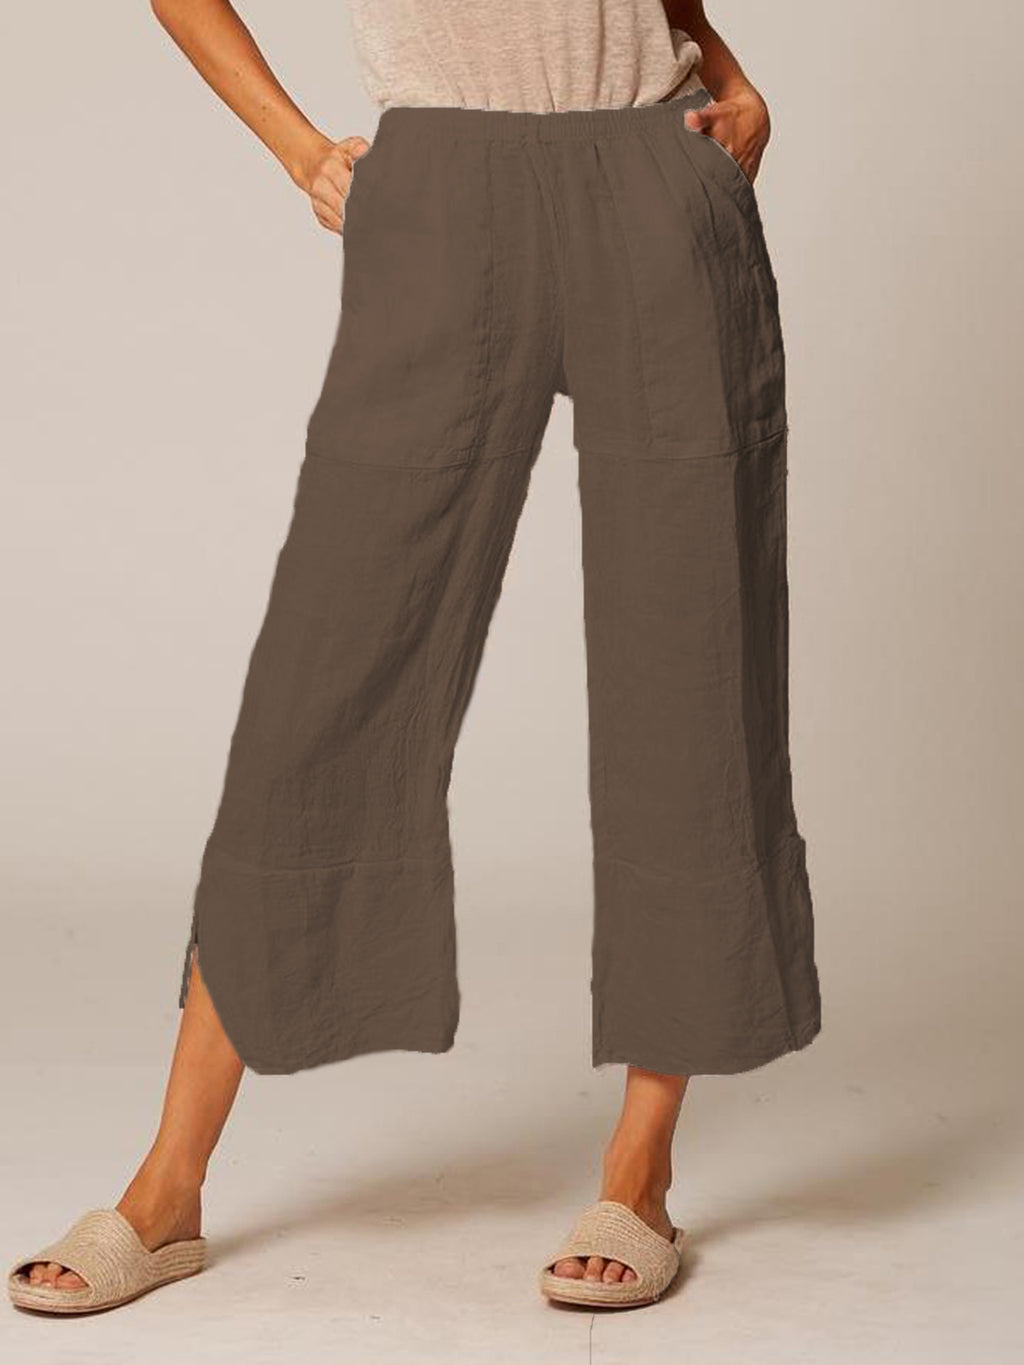 Women Plus Size Casual Pockets Solid Pants